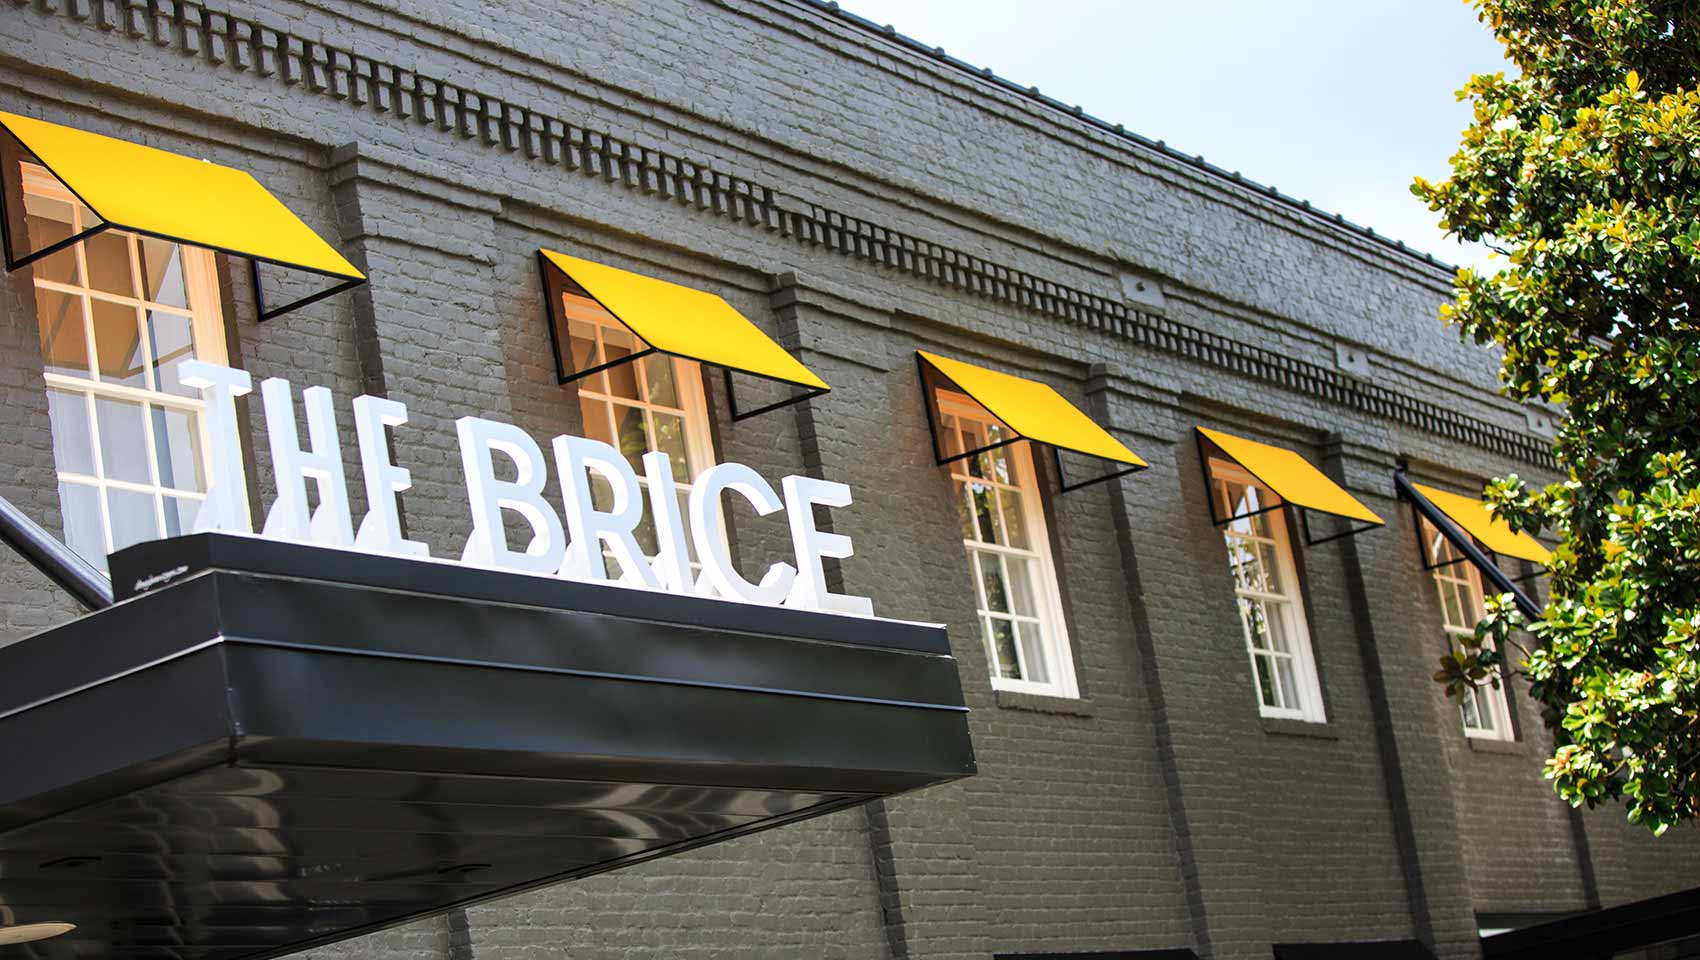 The Kimpton Brice Hotel